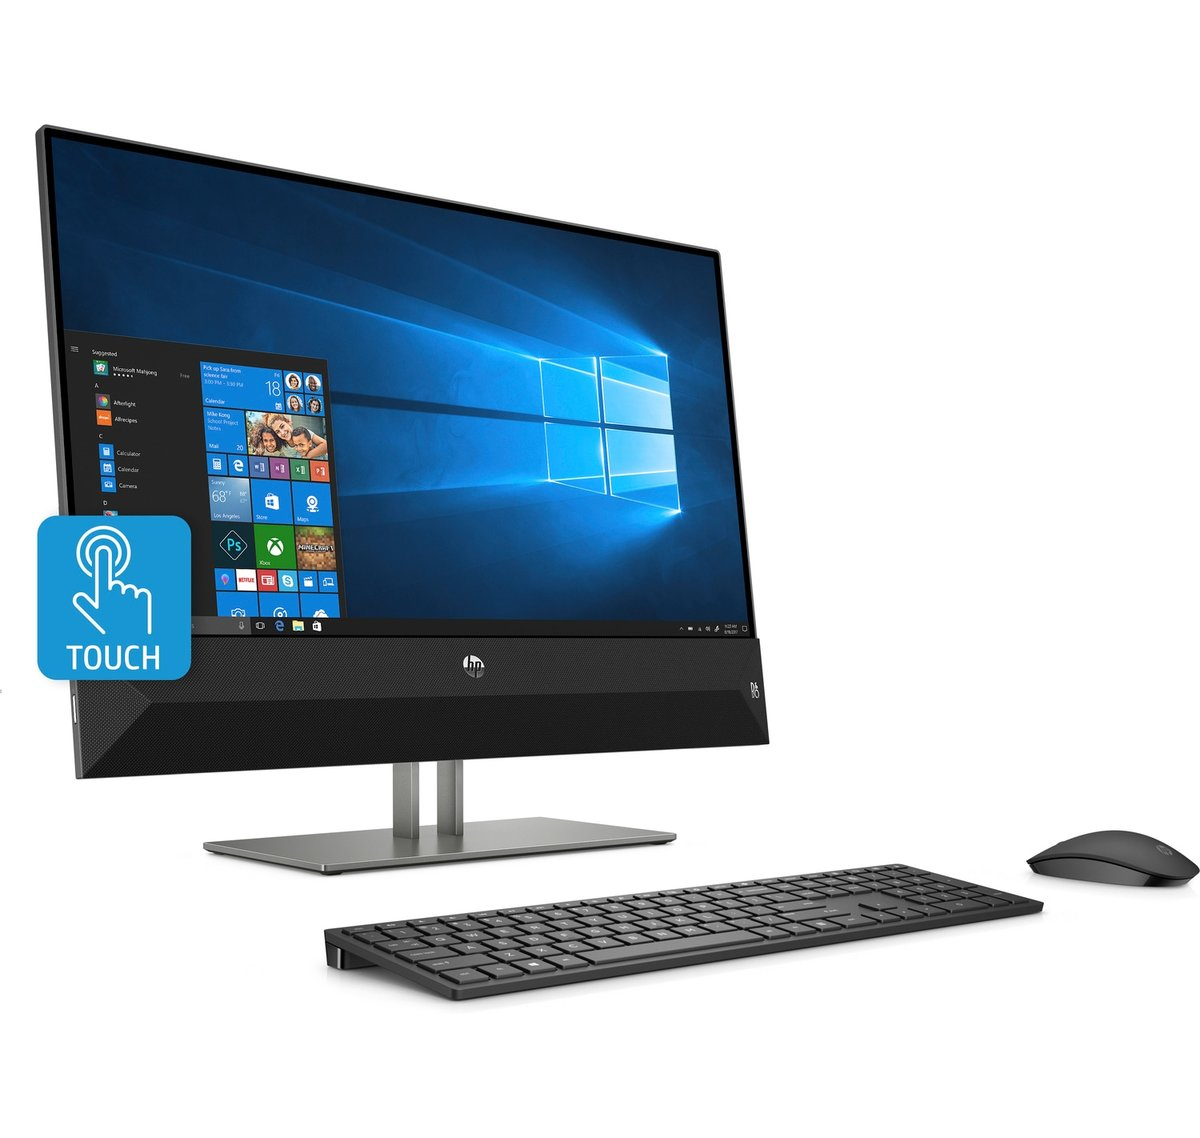 HP Pavilion 24 xa0020 All In One PC 23.8 Touch Screen AMD Ryzen 5 8GB Memory 2TB Hard Drive Windows 10 Home -Office Depot